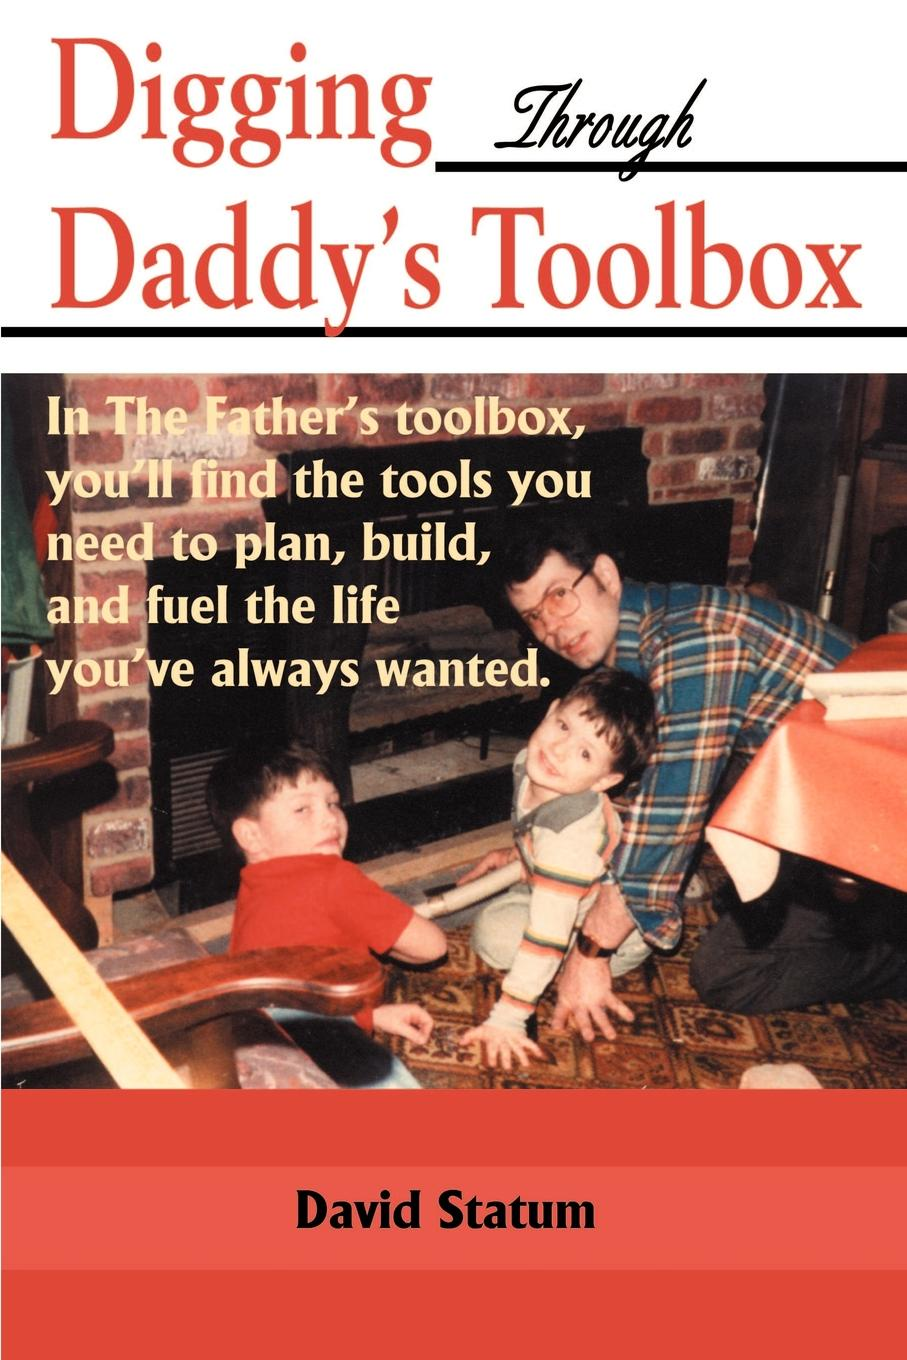 David Statum Digging Through Daddy's Toolbox. In the Father's Toolbox, You'll Find the Tools You Need to Plan, Build, and Fuel the Life You've Always Wanted